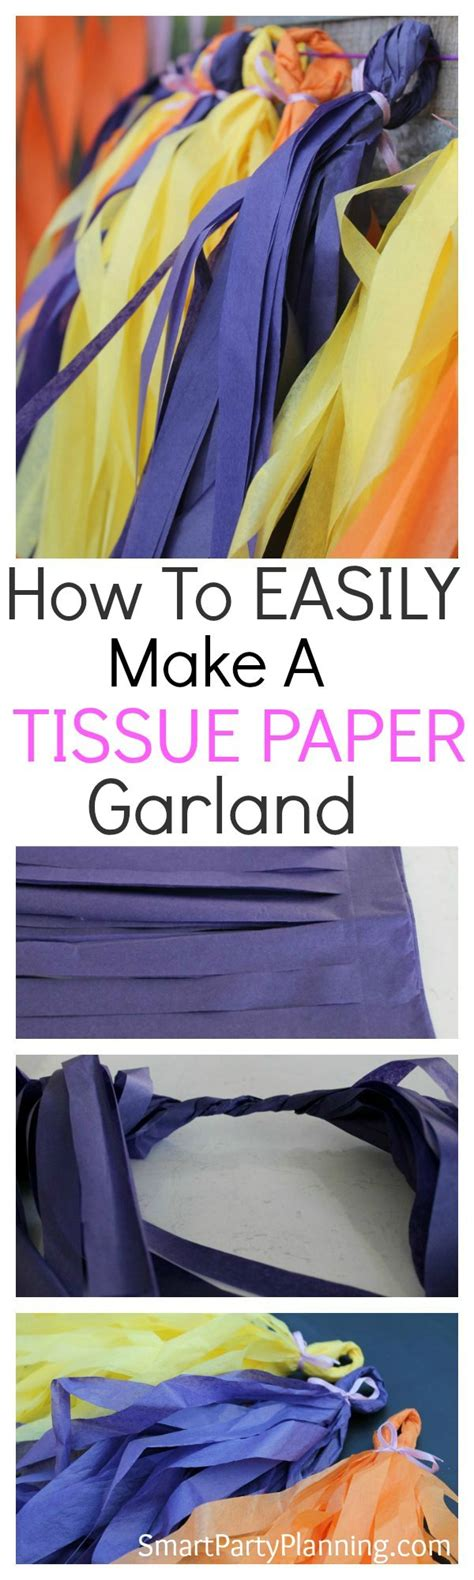 How To Make Tissue Paper Garland - how to make a tissue paper garland